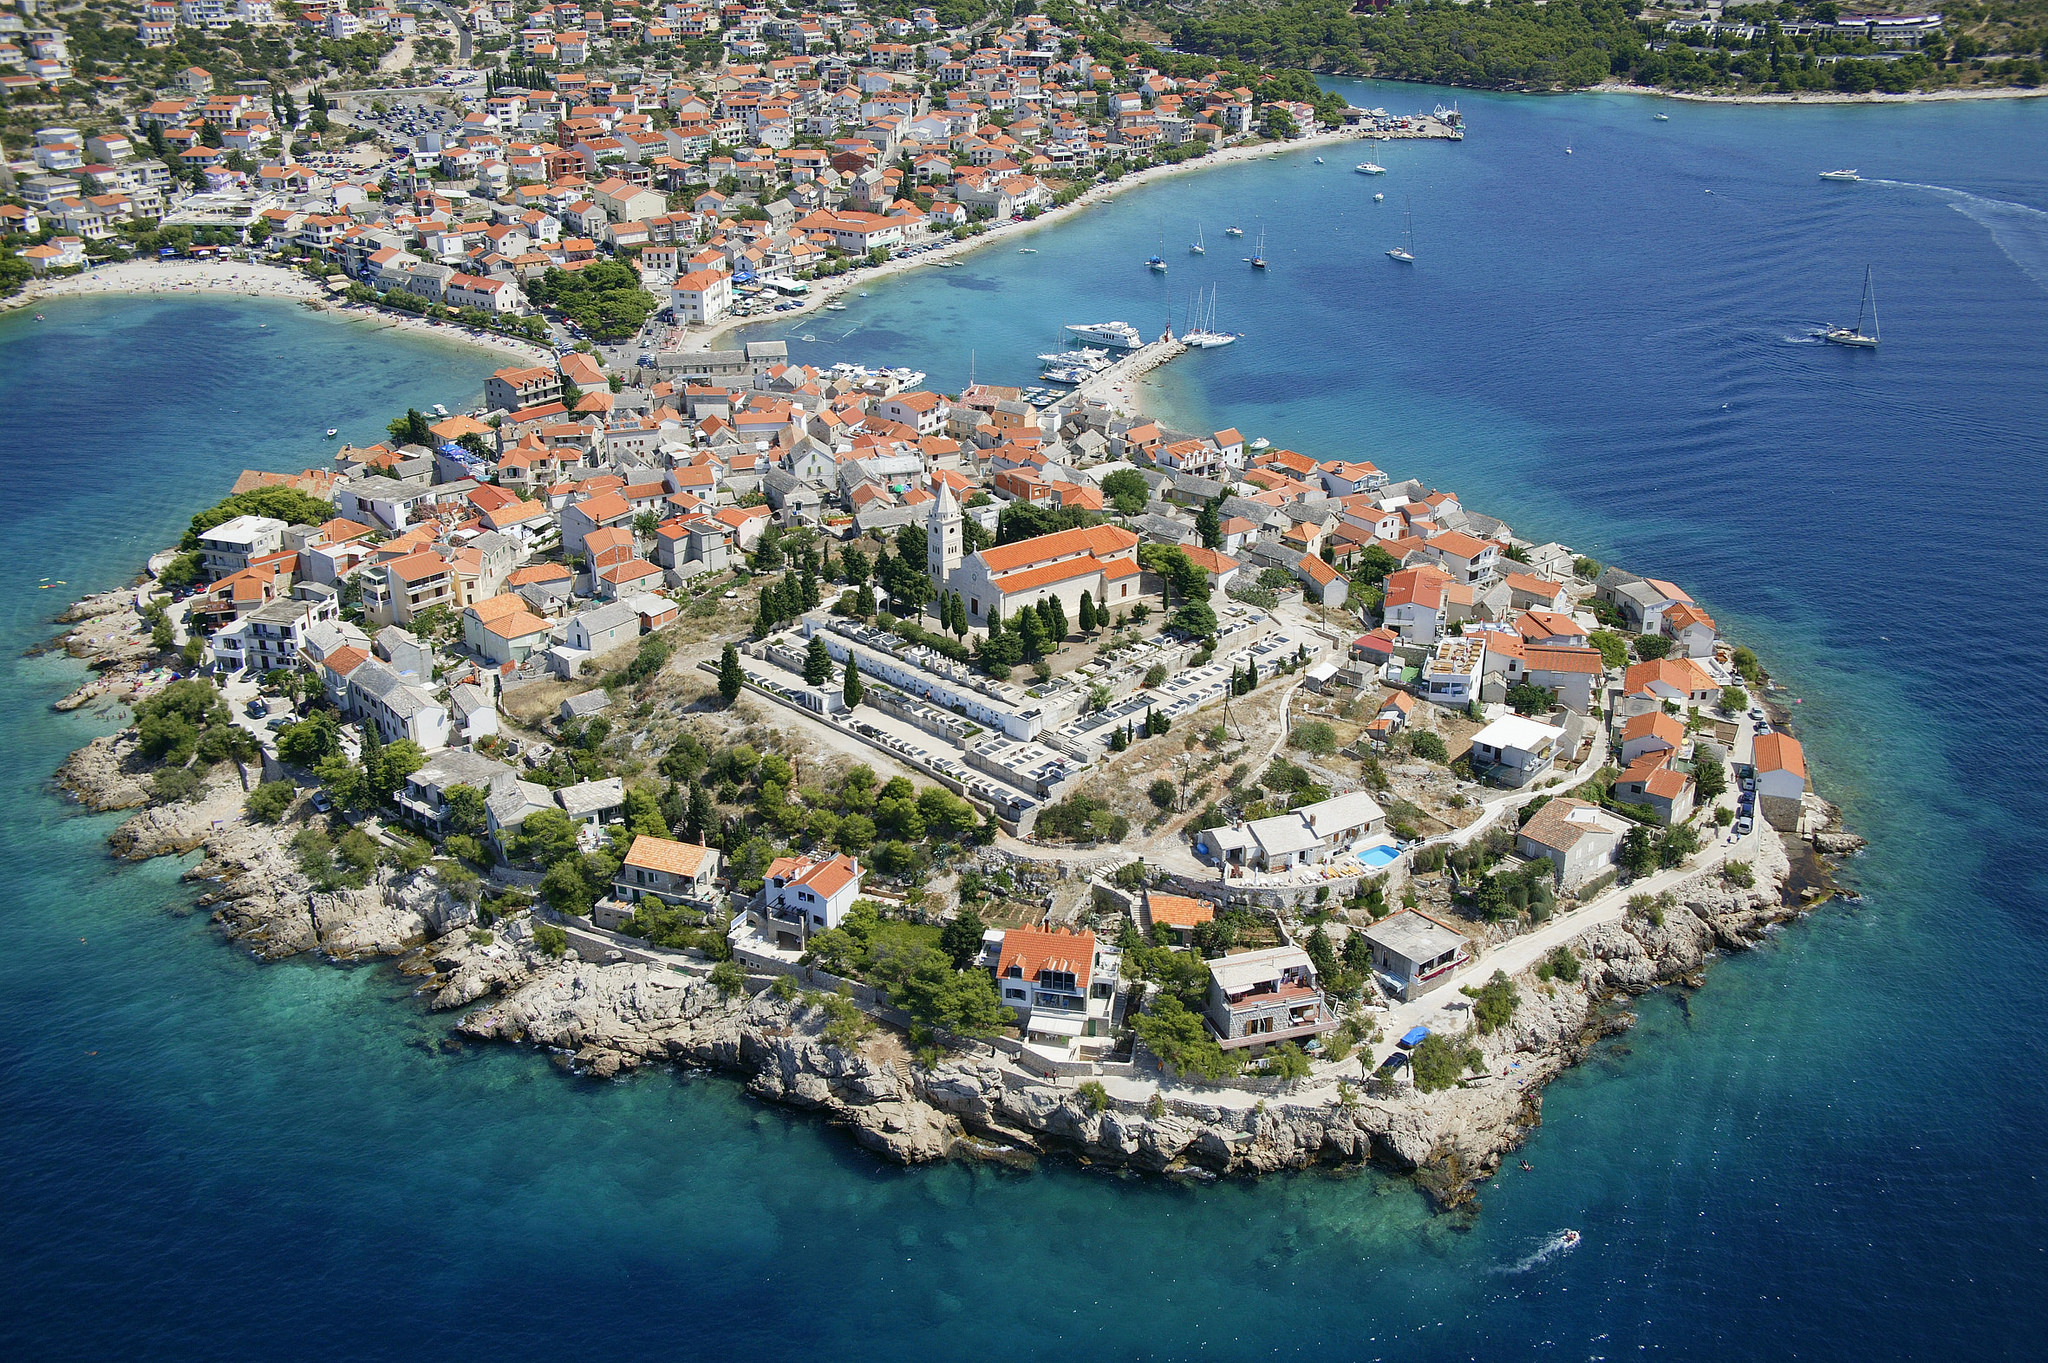 Primošten (Primosten), Croatia - Monterrasol small group tours to Primošten (Primosten), Croatia. Travel agency offers small group car tours to see Primošten (Primosten) in Croatia. Order small group tour to Primošten (Primosten) with departure date on request.